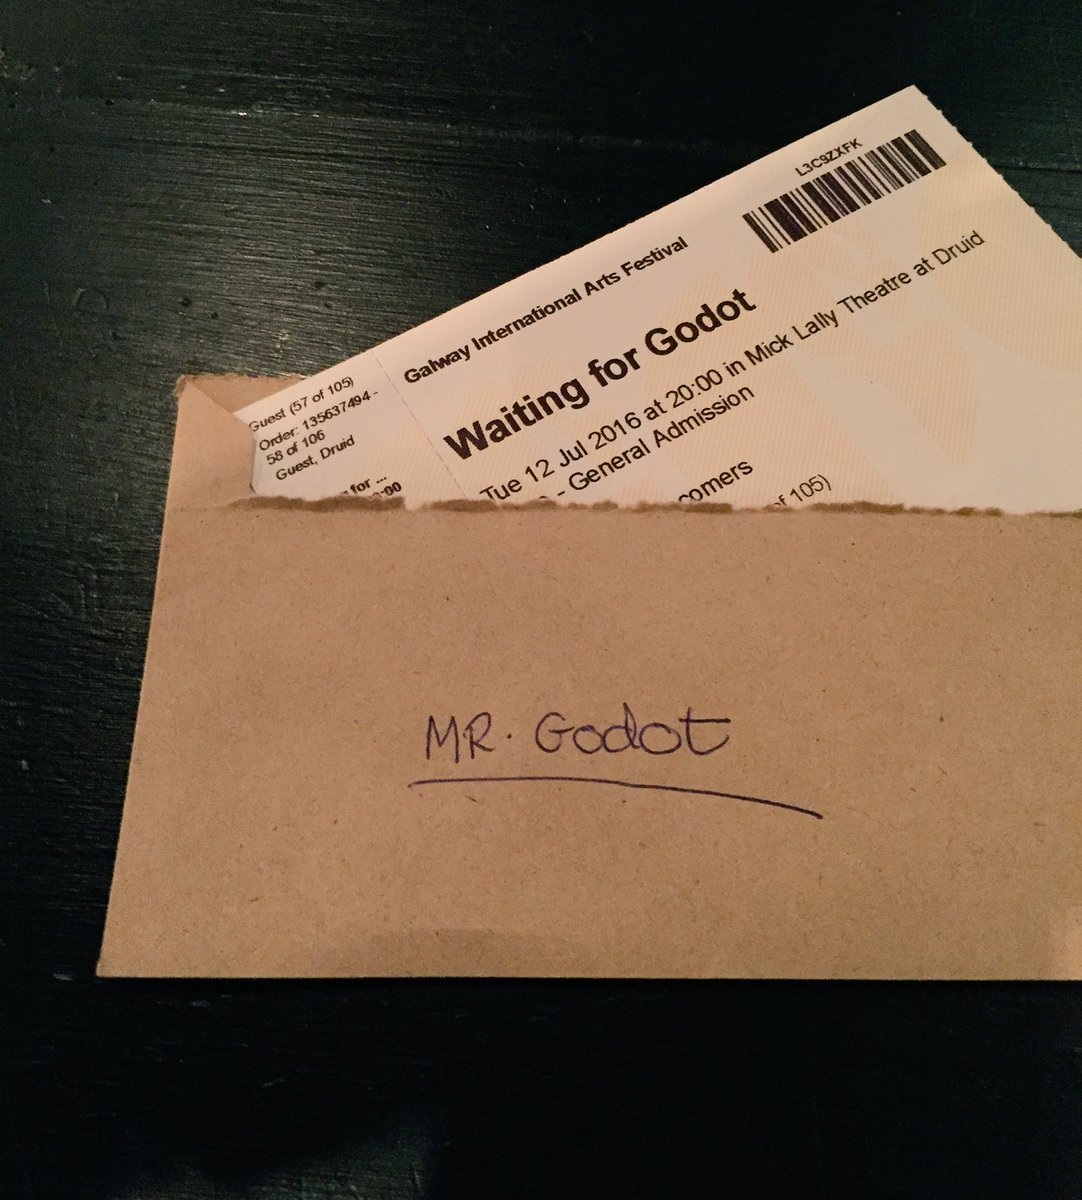 Mr. Godot was a no show at the box office again tonight. #rude #waitingforgodot https://t.co/RA5xSWUv6P